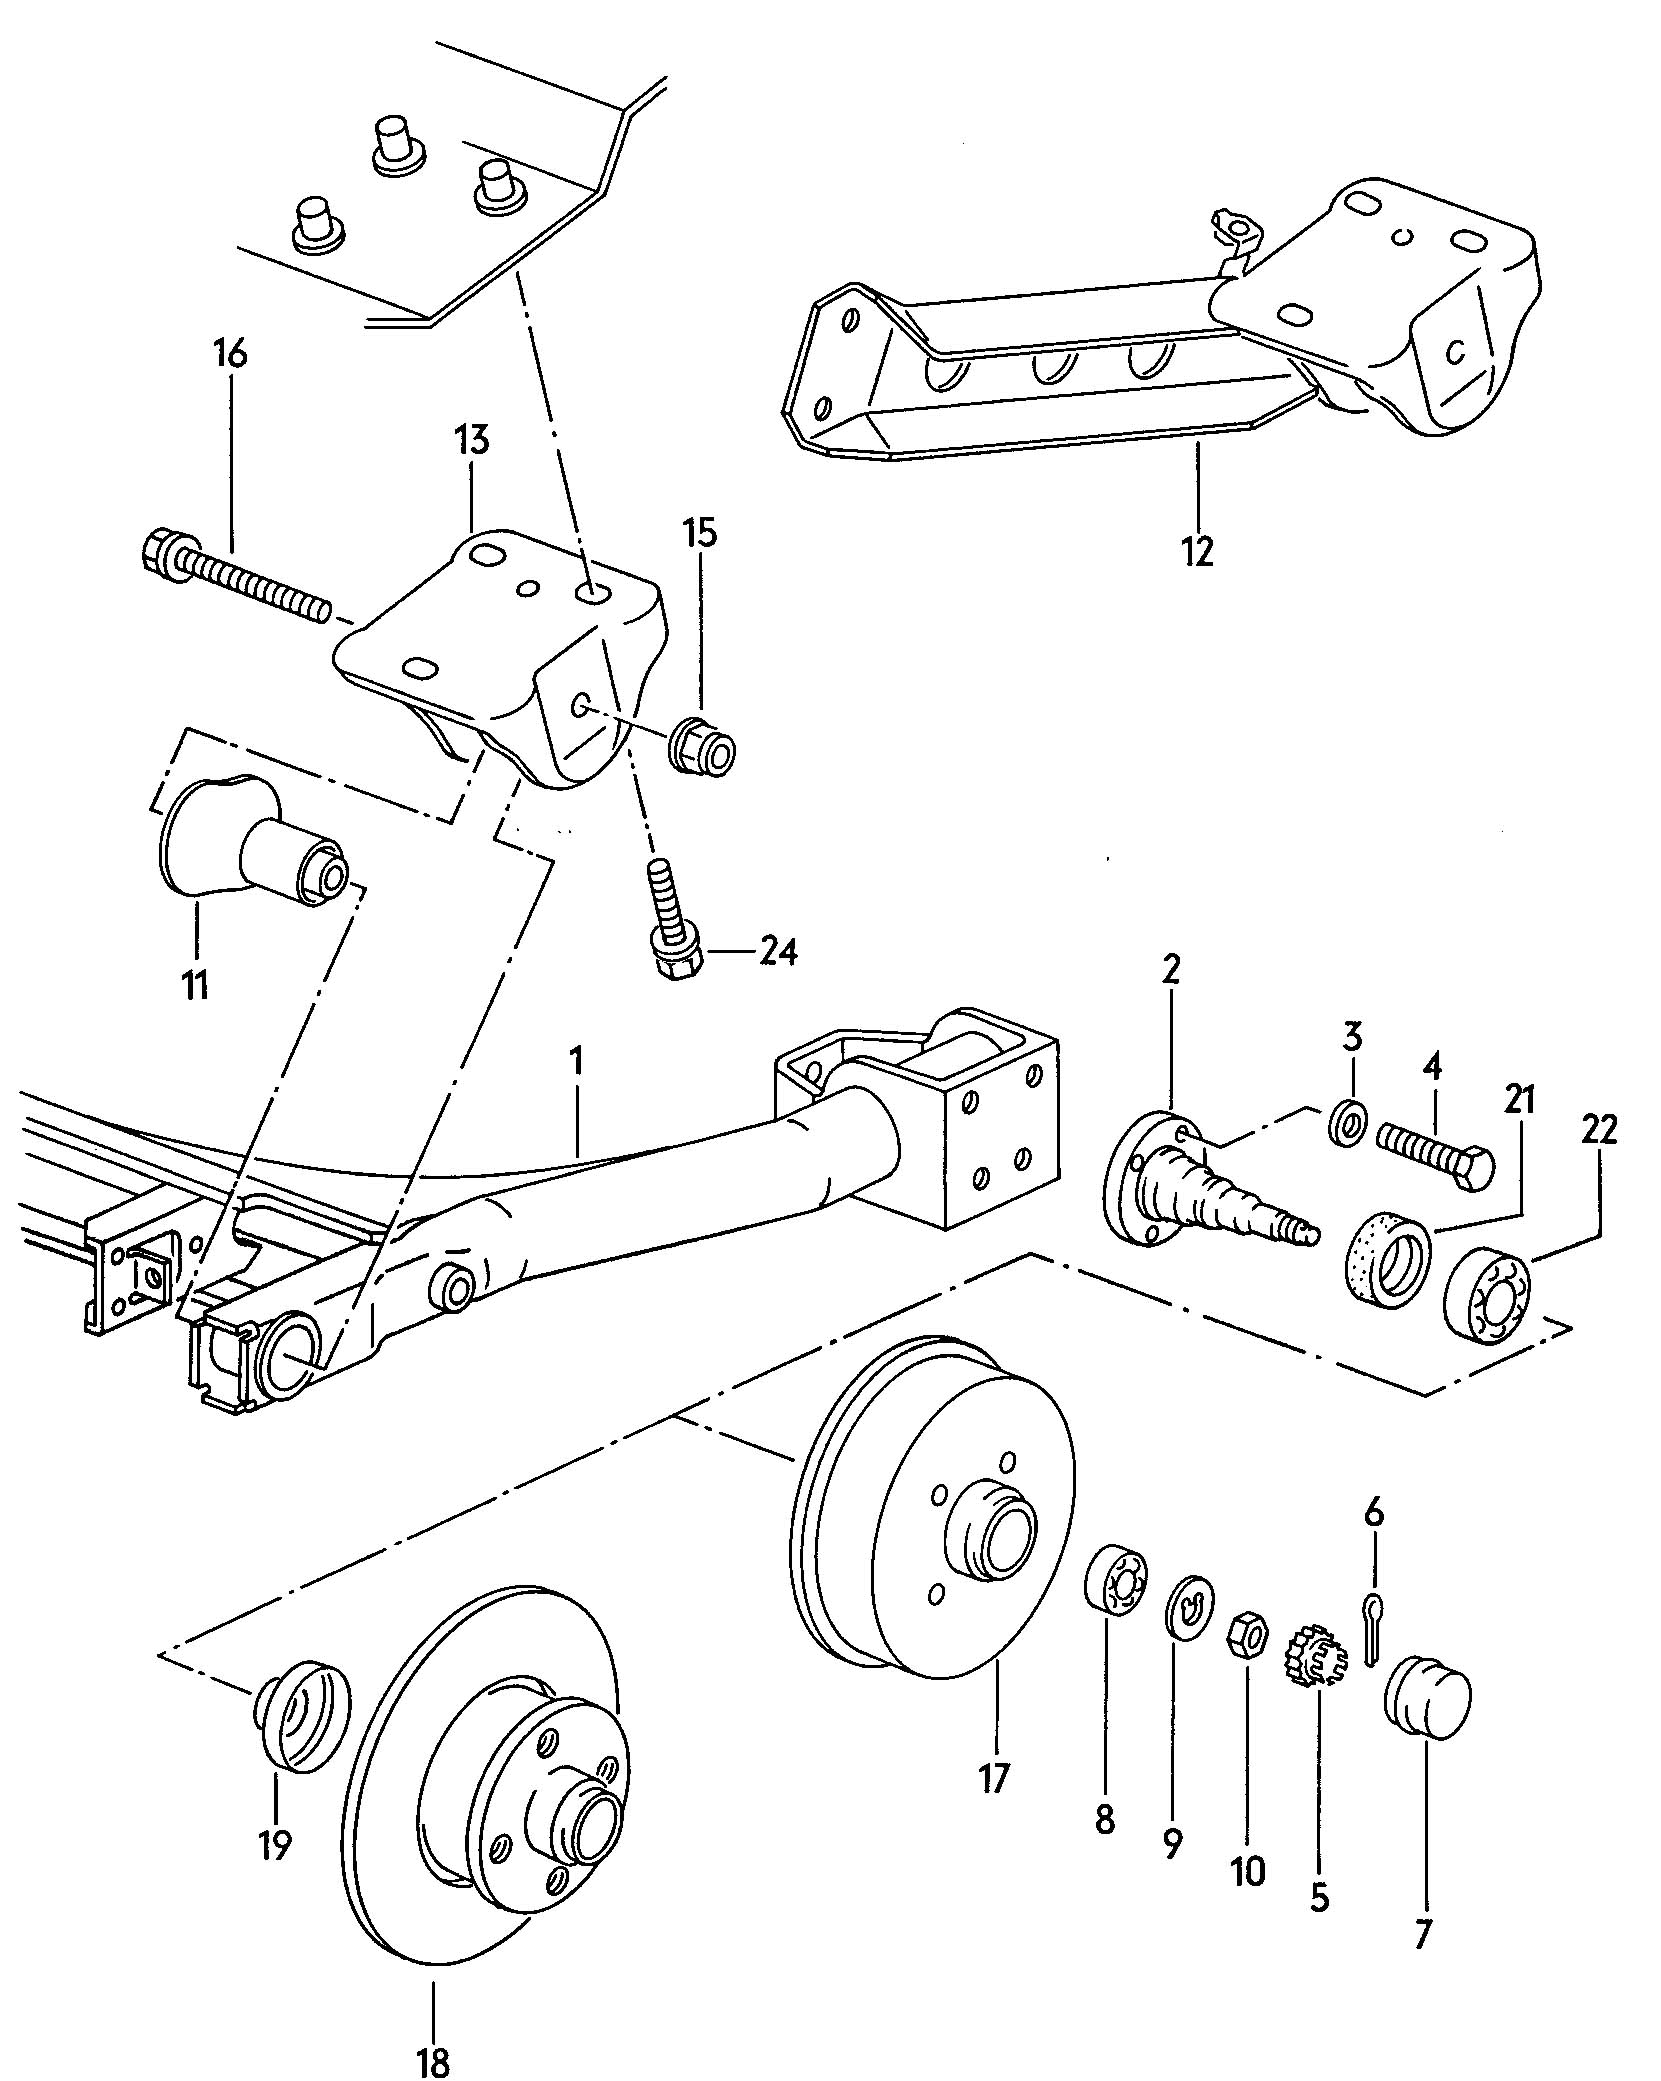 vw beetle rear suspension diagram labeled of a chicken stub axle parts auto wiring